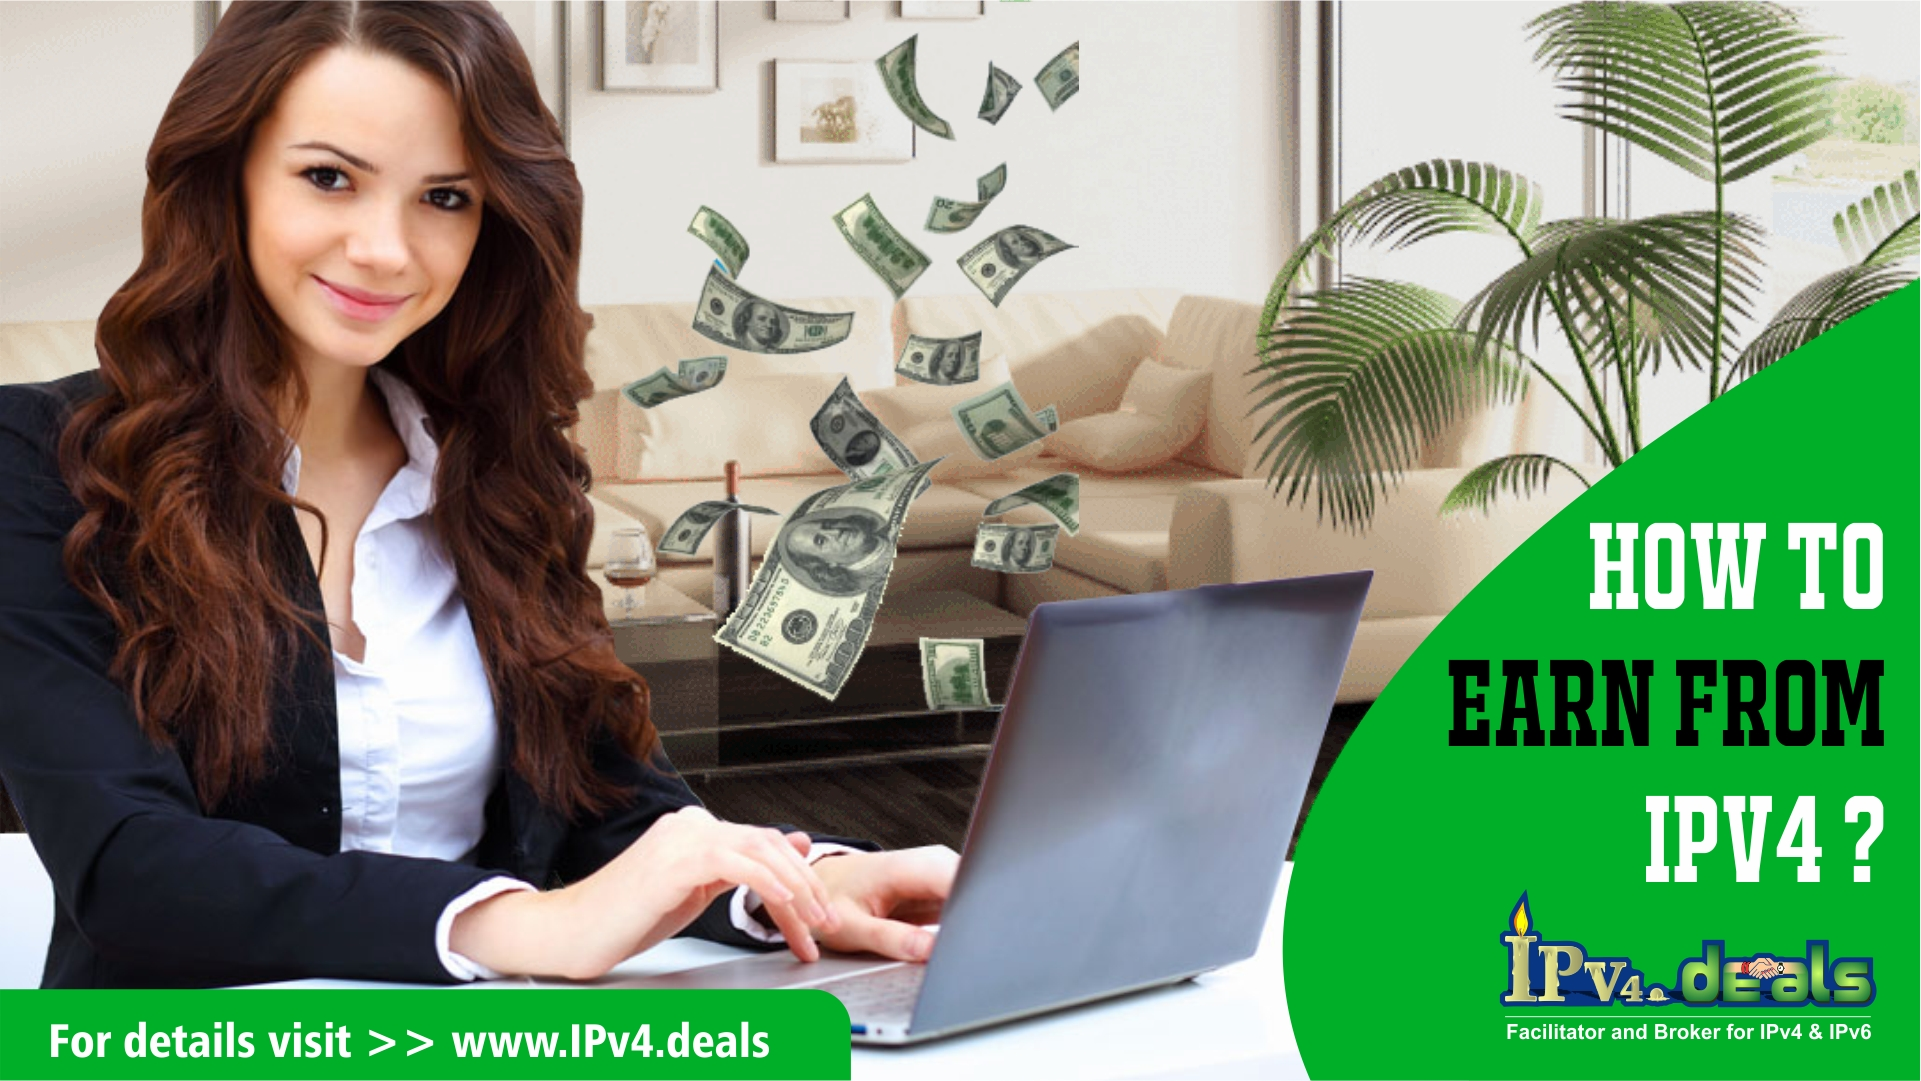 How to earn from IPv4 ?